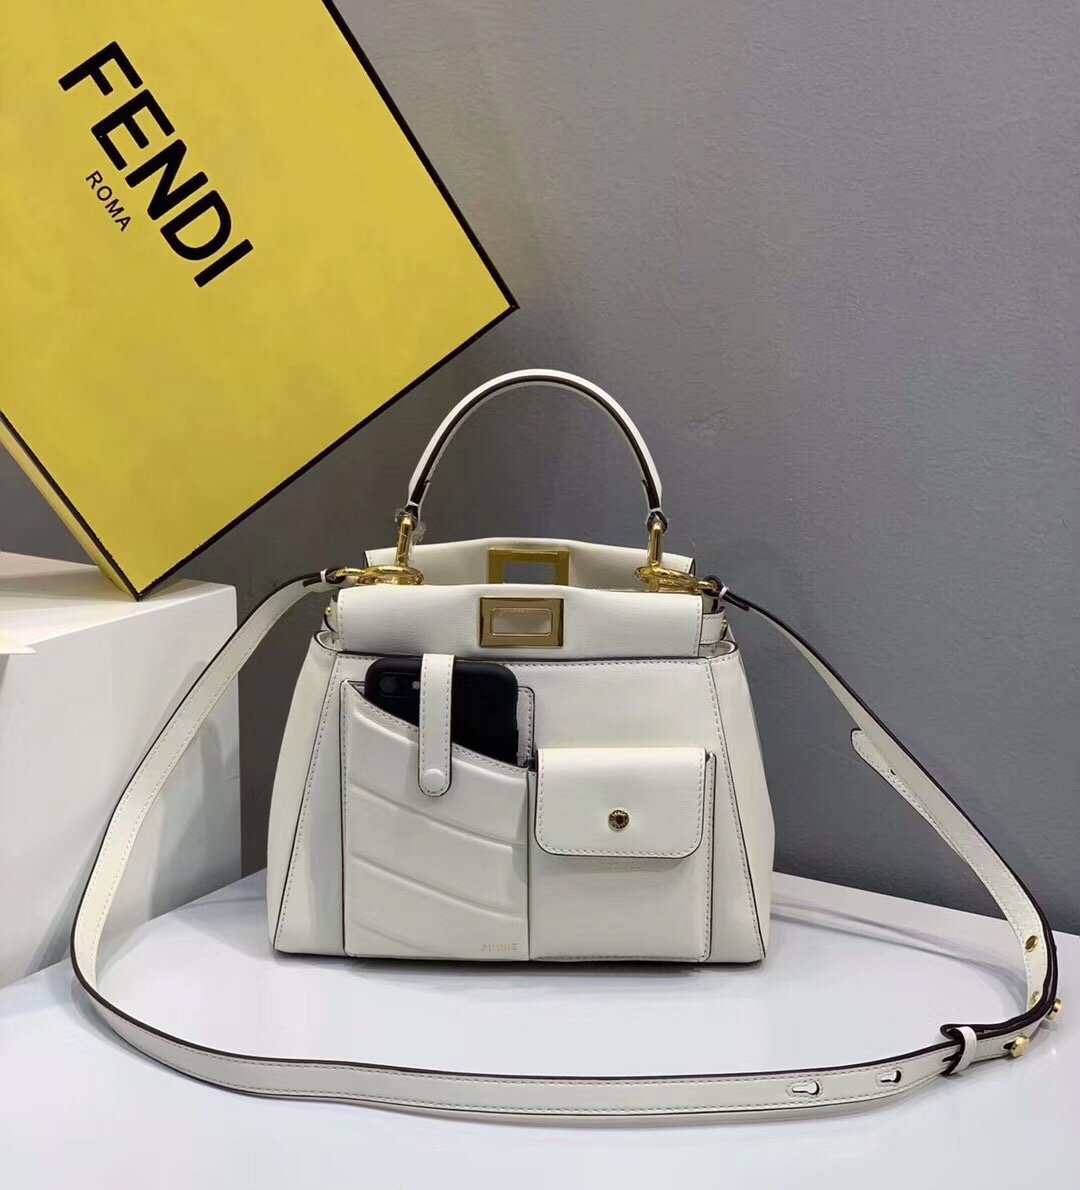 Replica Fendi Peekaboo Iconic Mini White Leather Bag